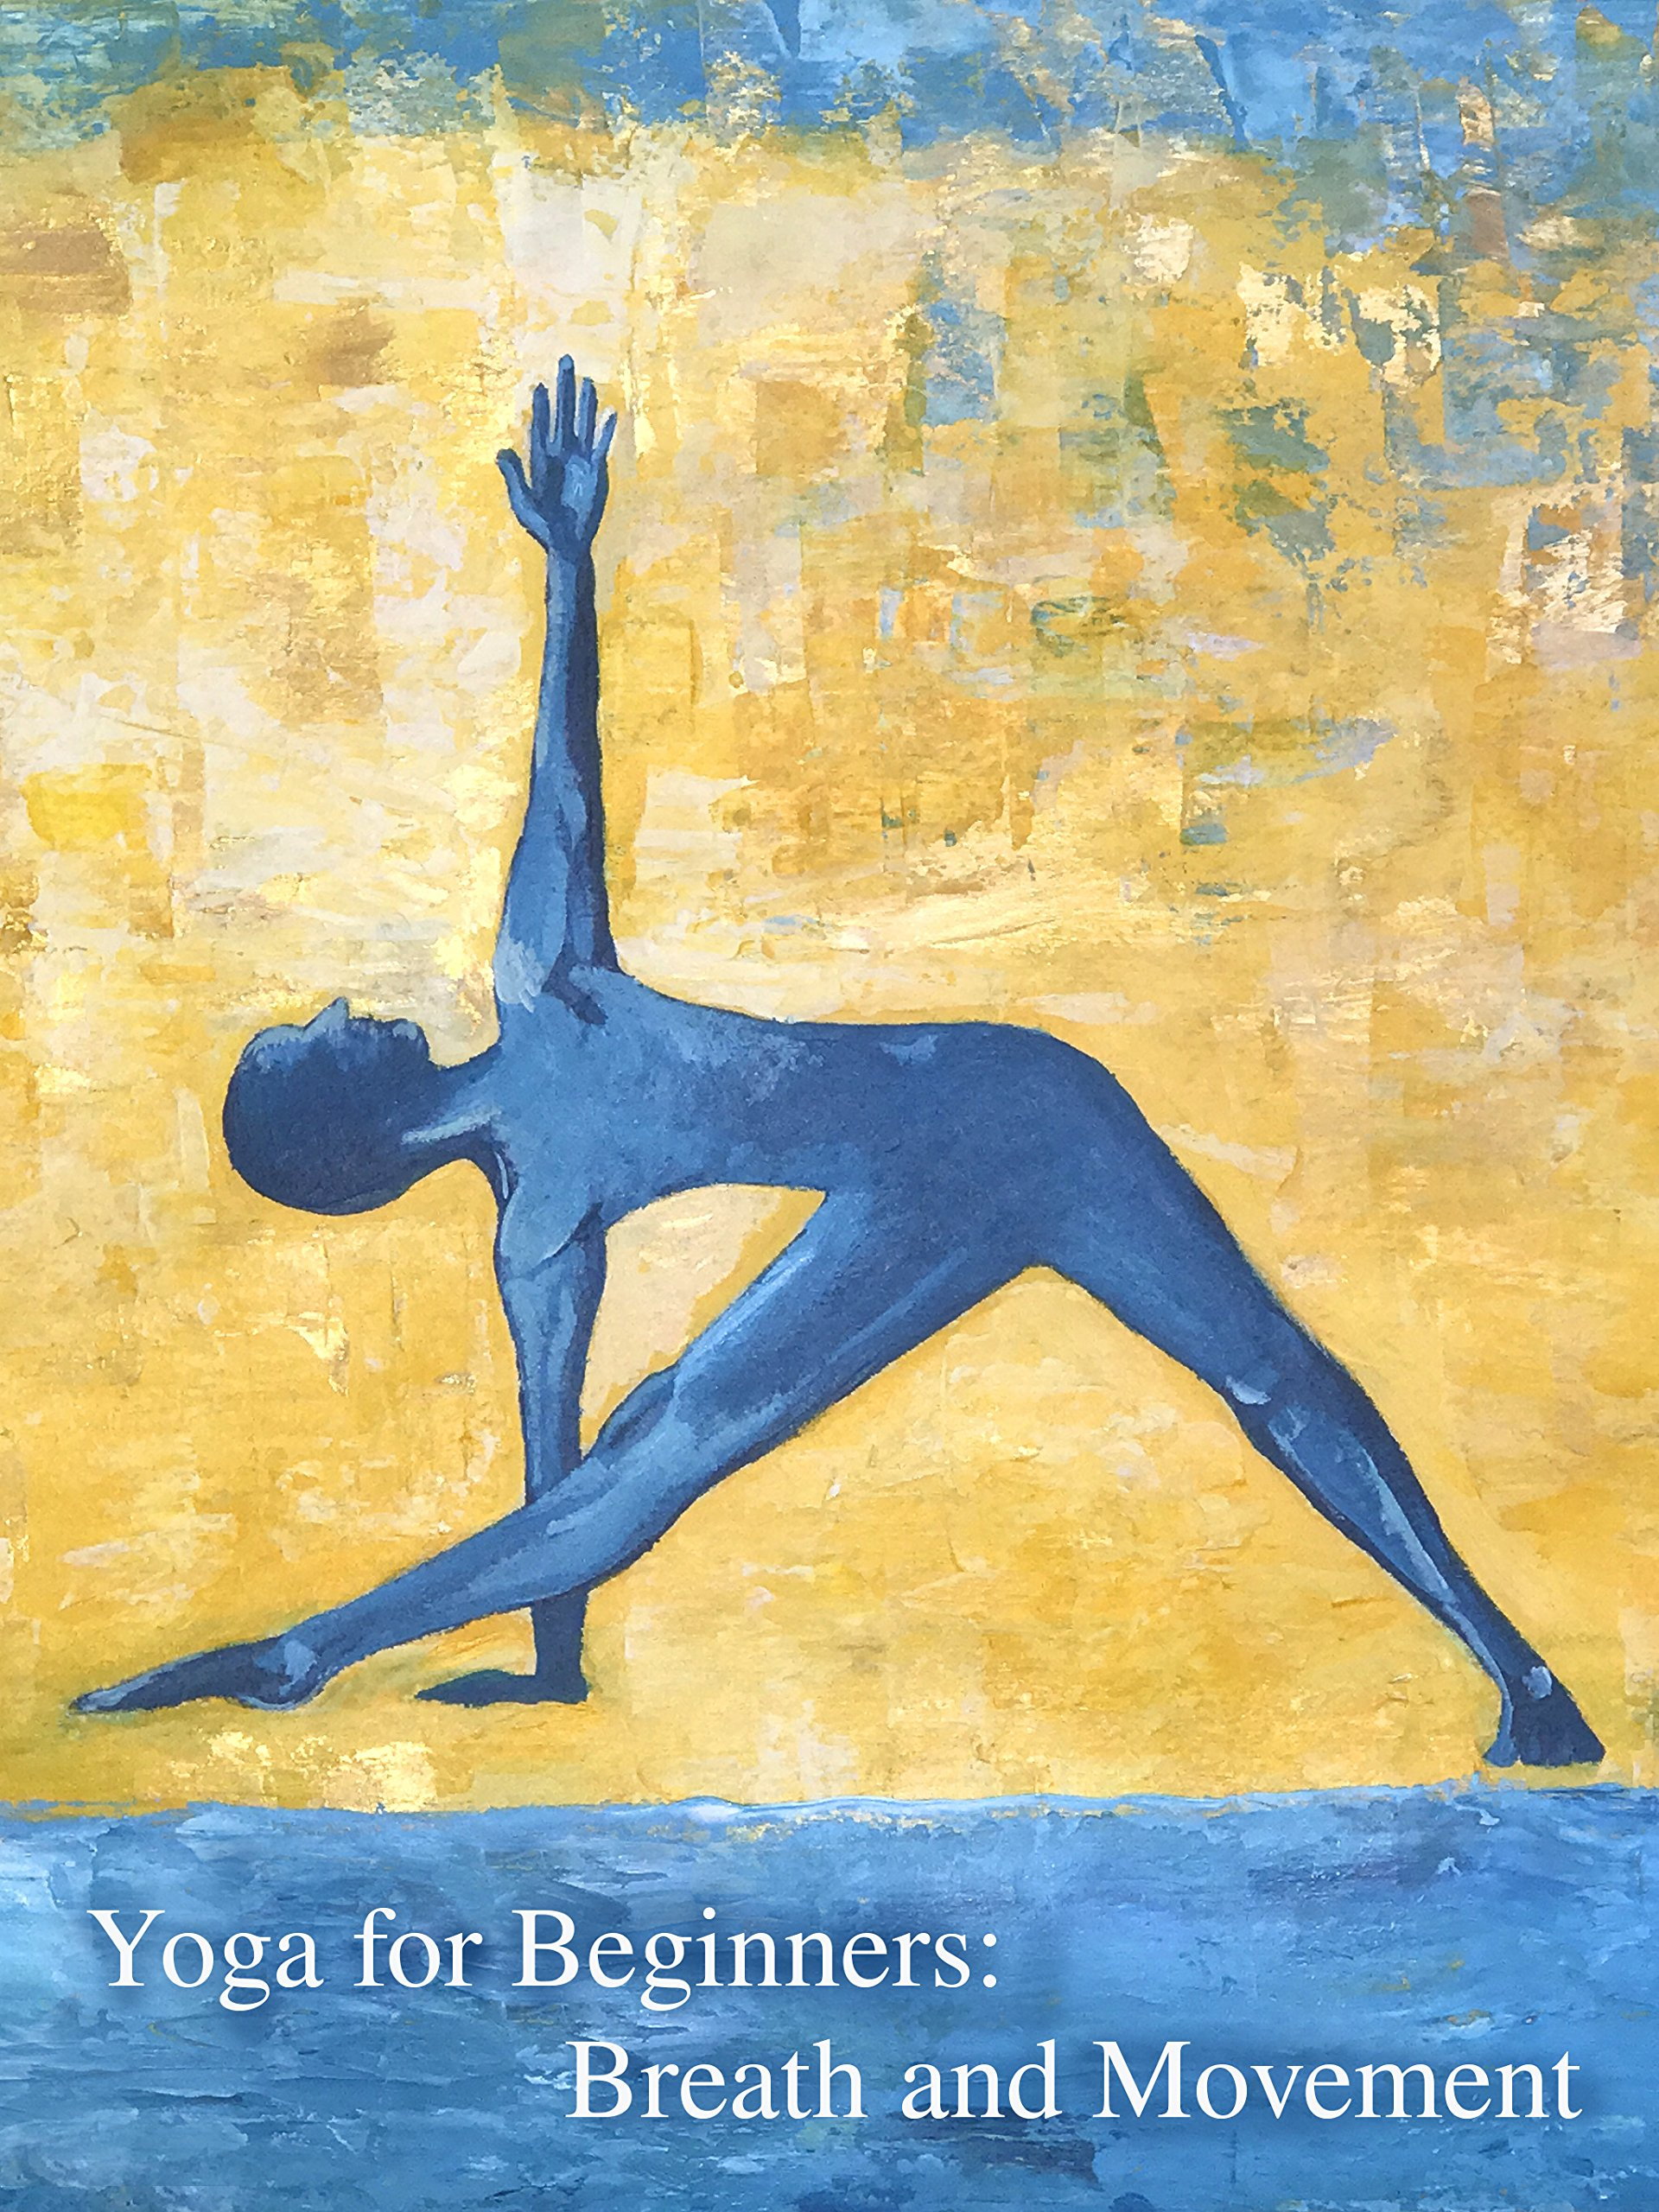 Yoga for Beginners: Breath and Movement